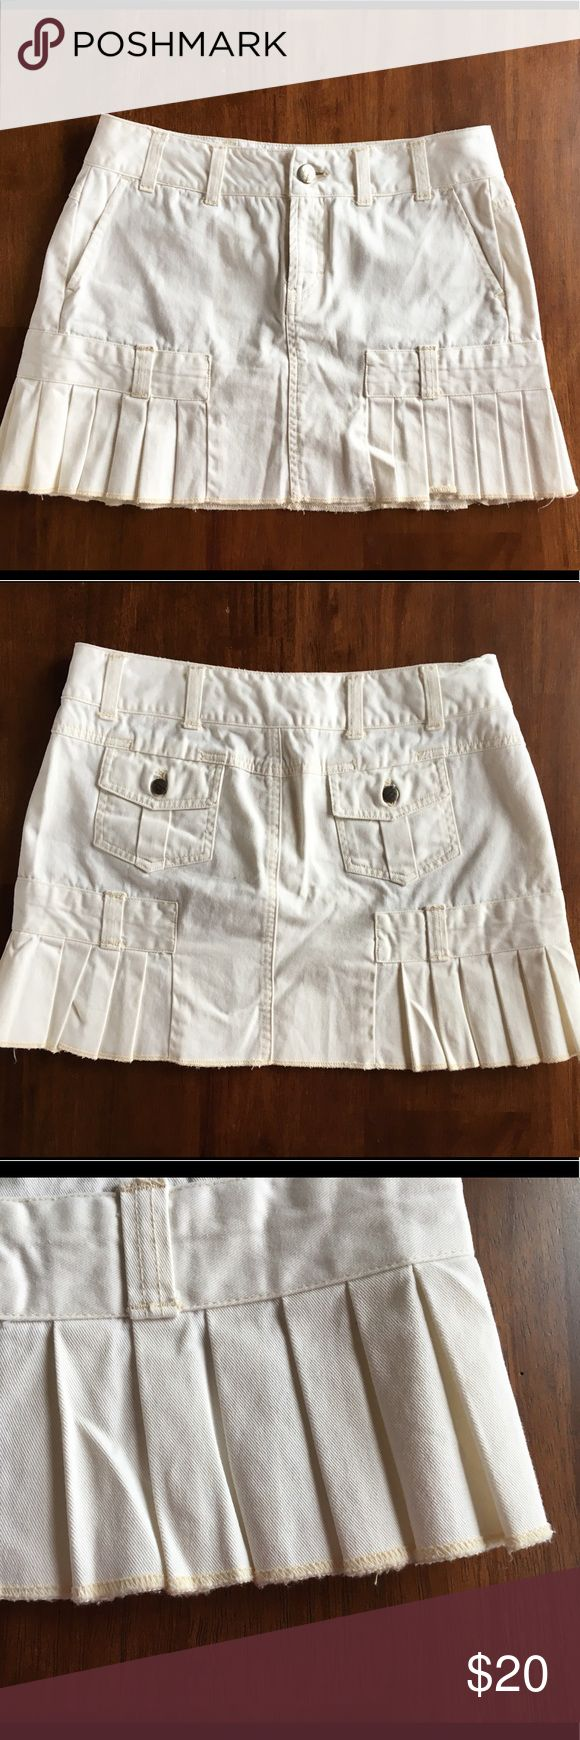 "AEO Off-White Denim Pleated Mini Skirt Size 4 American Eagle Outfitters  Off-white denim mini skirt Size 4 Pleated Approximately 14"" long  If you need additional pictures or measurements please feel free to ask 😊 American Eagle Outfitters Skirts Mini"